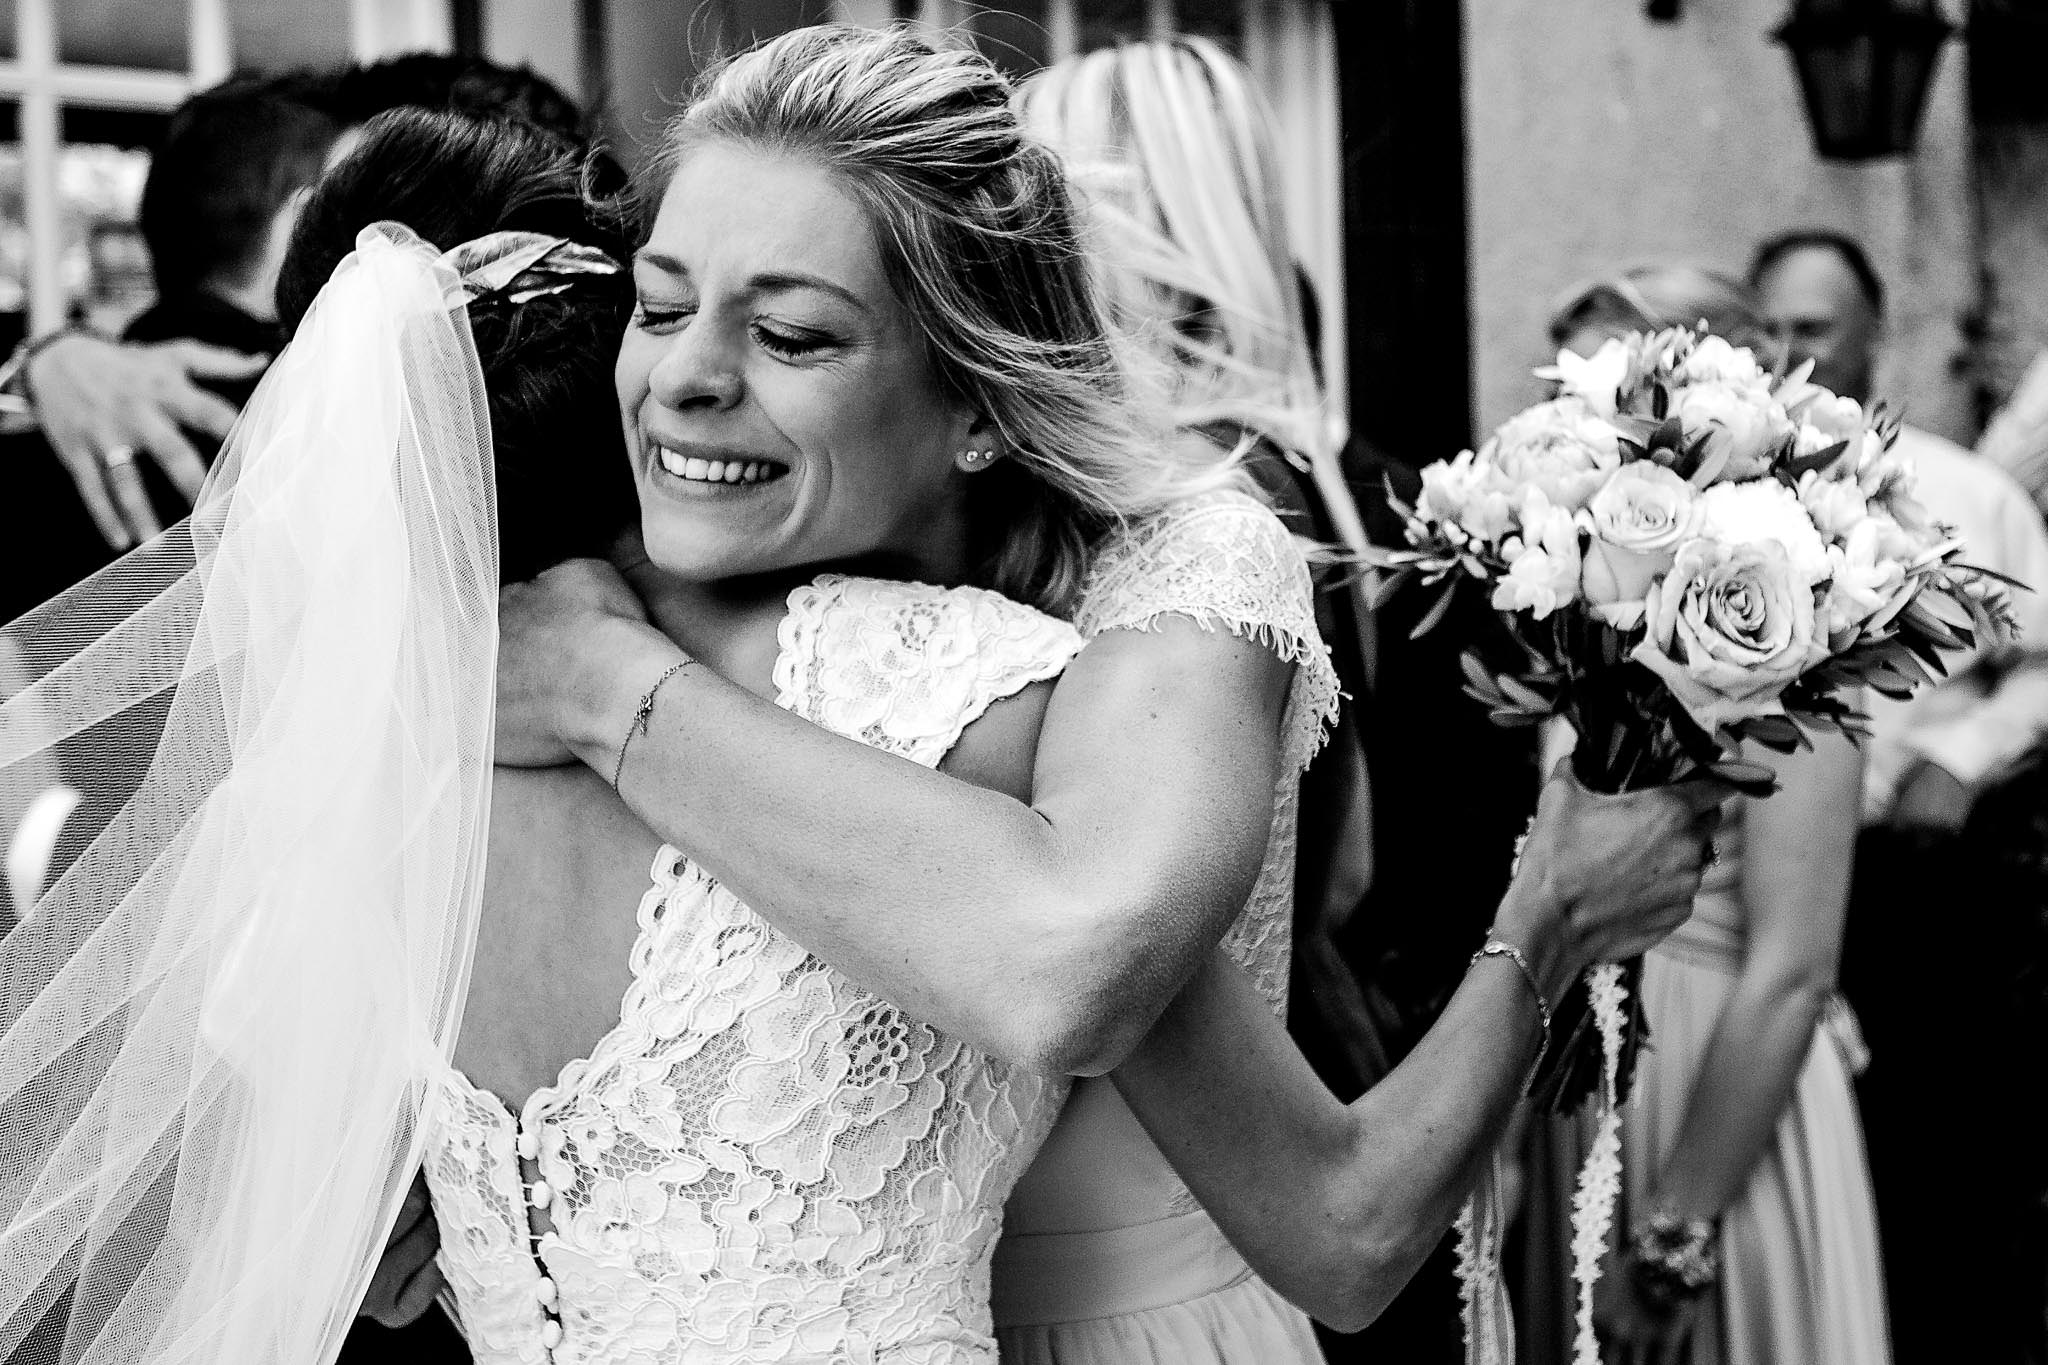 Emotional bridesmaid at French wedding hugging bride